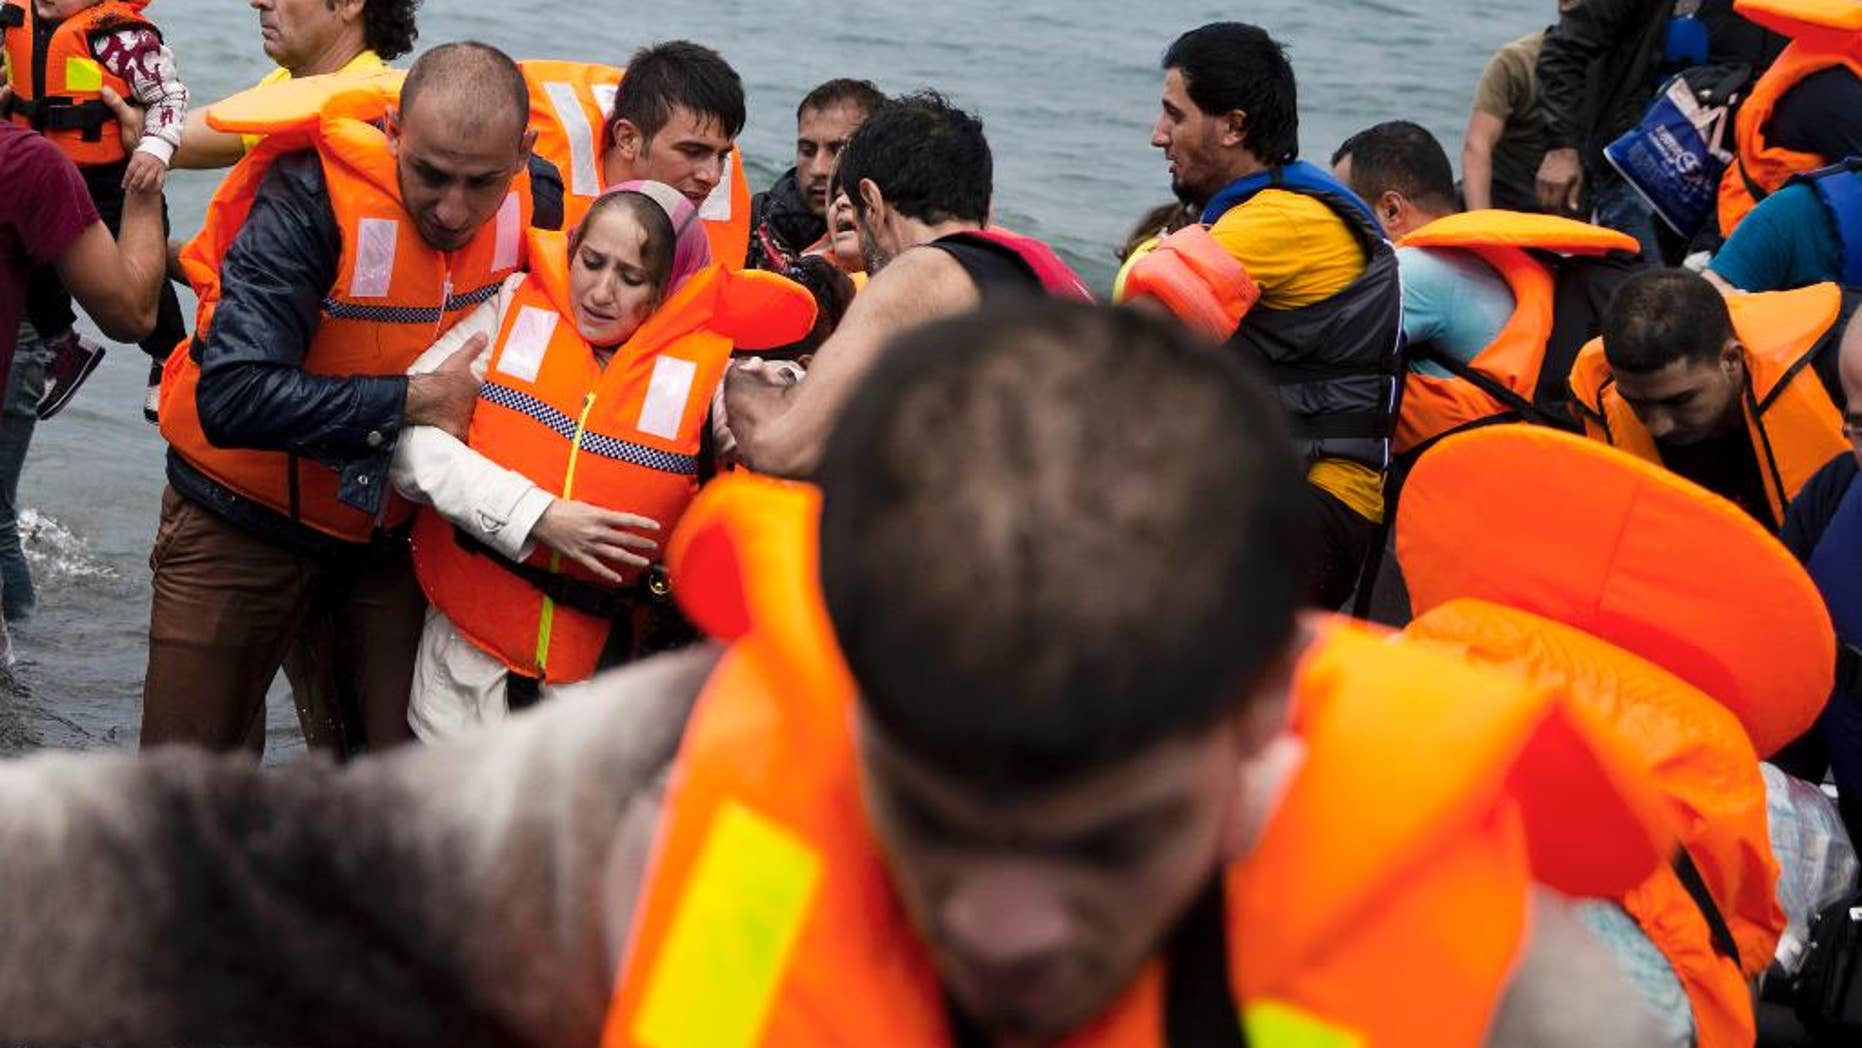 Syrian refugees arrive on the shores of the Greek island of Lesbos after crossing the Aegean Sea from Turkey on a inflatable dinghy , Tuesday,  Sept. 22, 2015. More than 260,000 asylum-seekers have arrived in Greece so far this year, most reaching the country's eastern islands on flimsy rafts or boats from the nearby Turkish coast. (AP Photo/Petros Giannakouris)